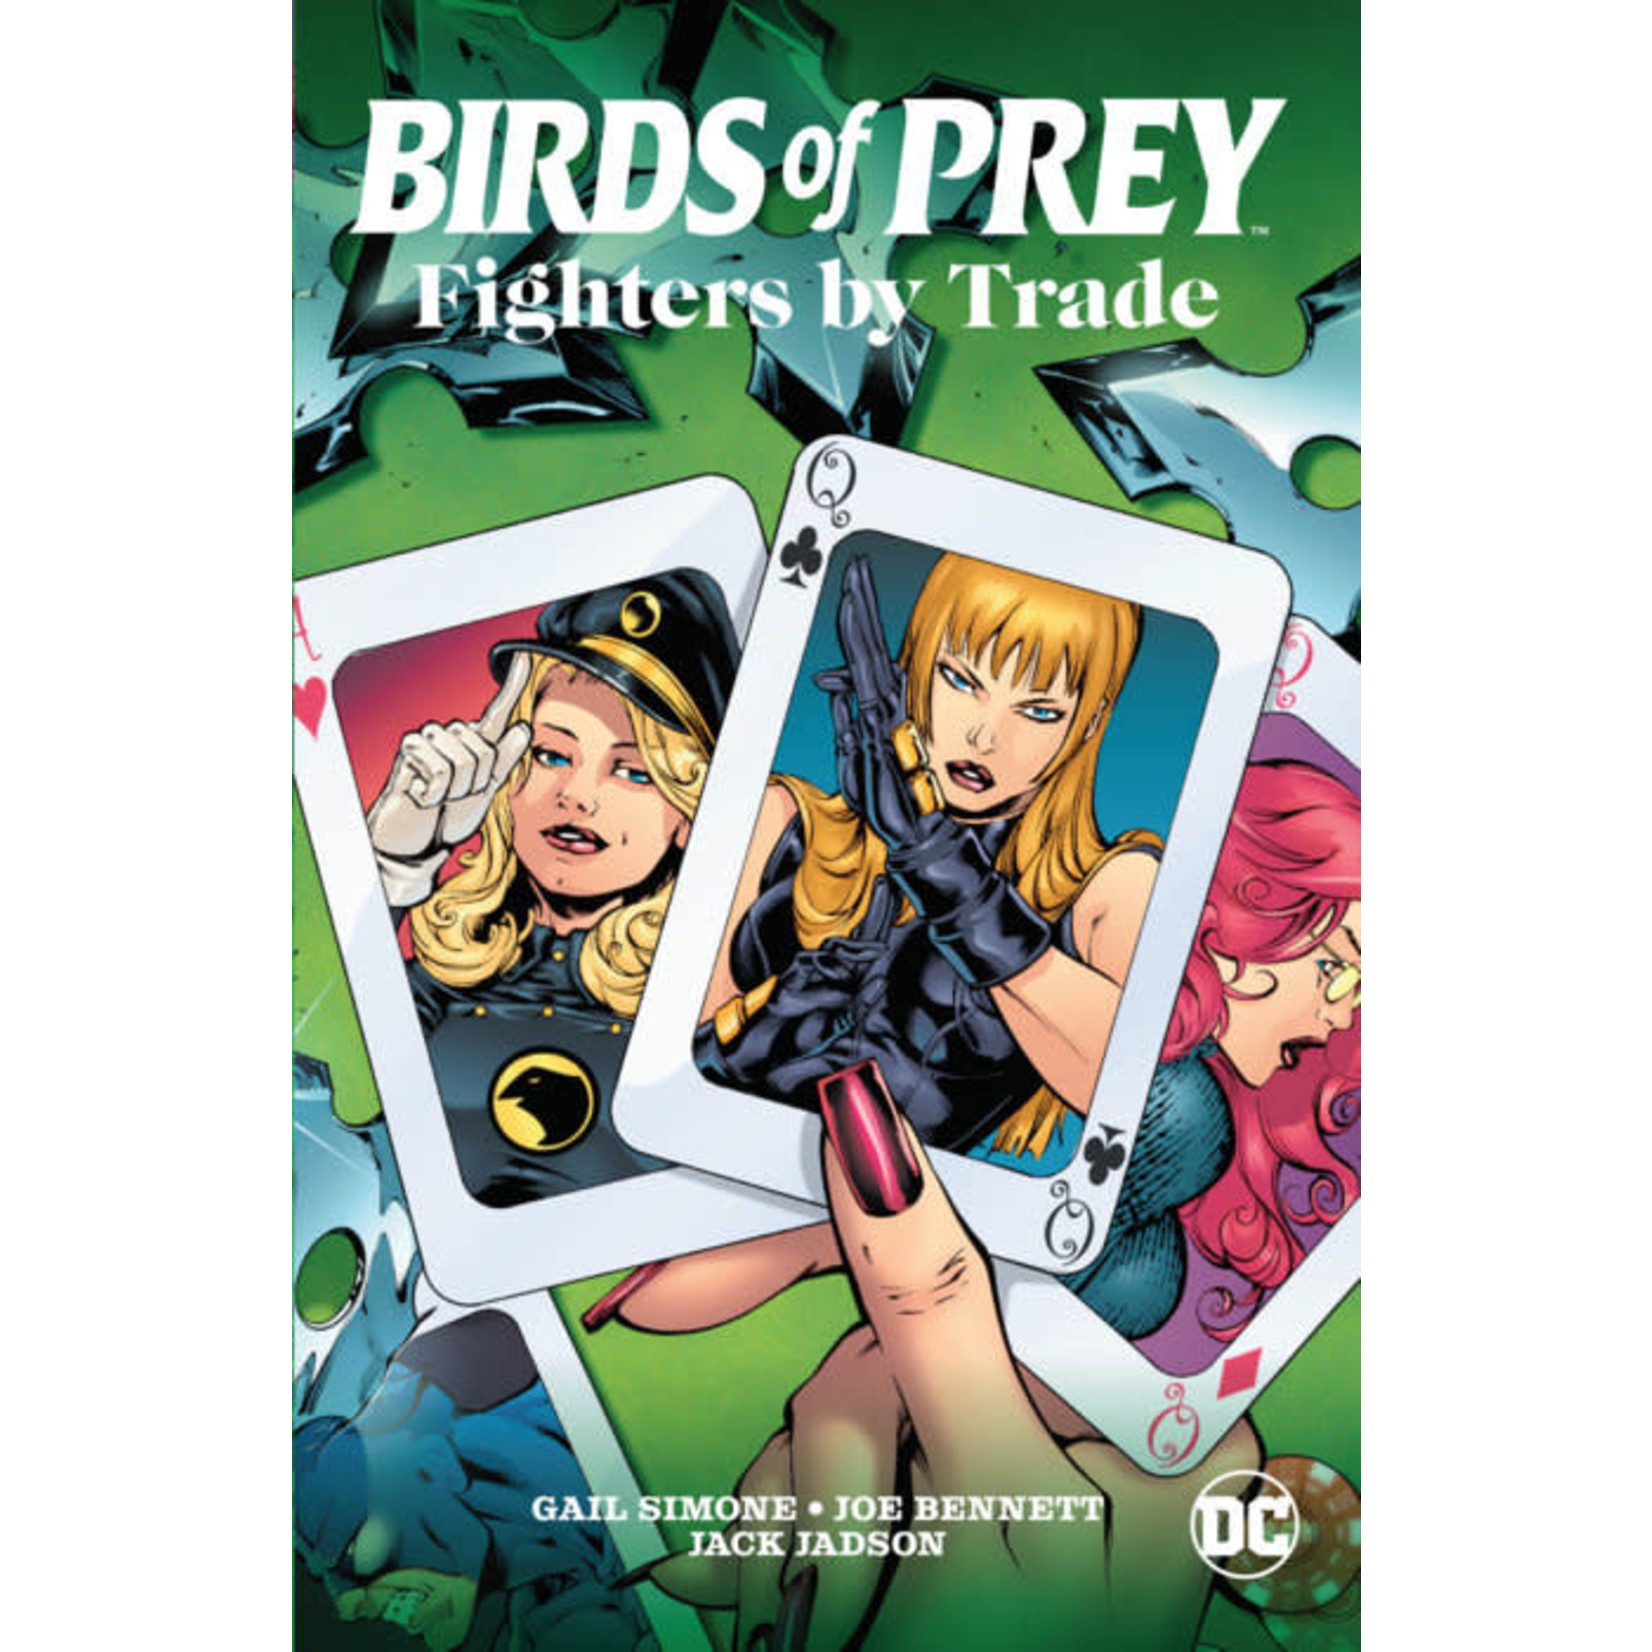 DC Comics Birds of Prey: Fighters by Trade by Gail Simone